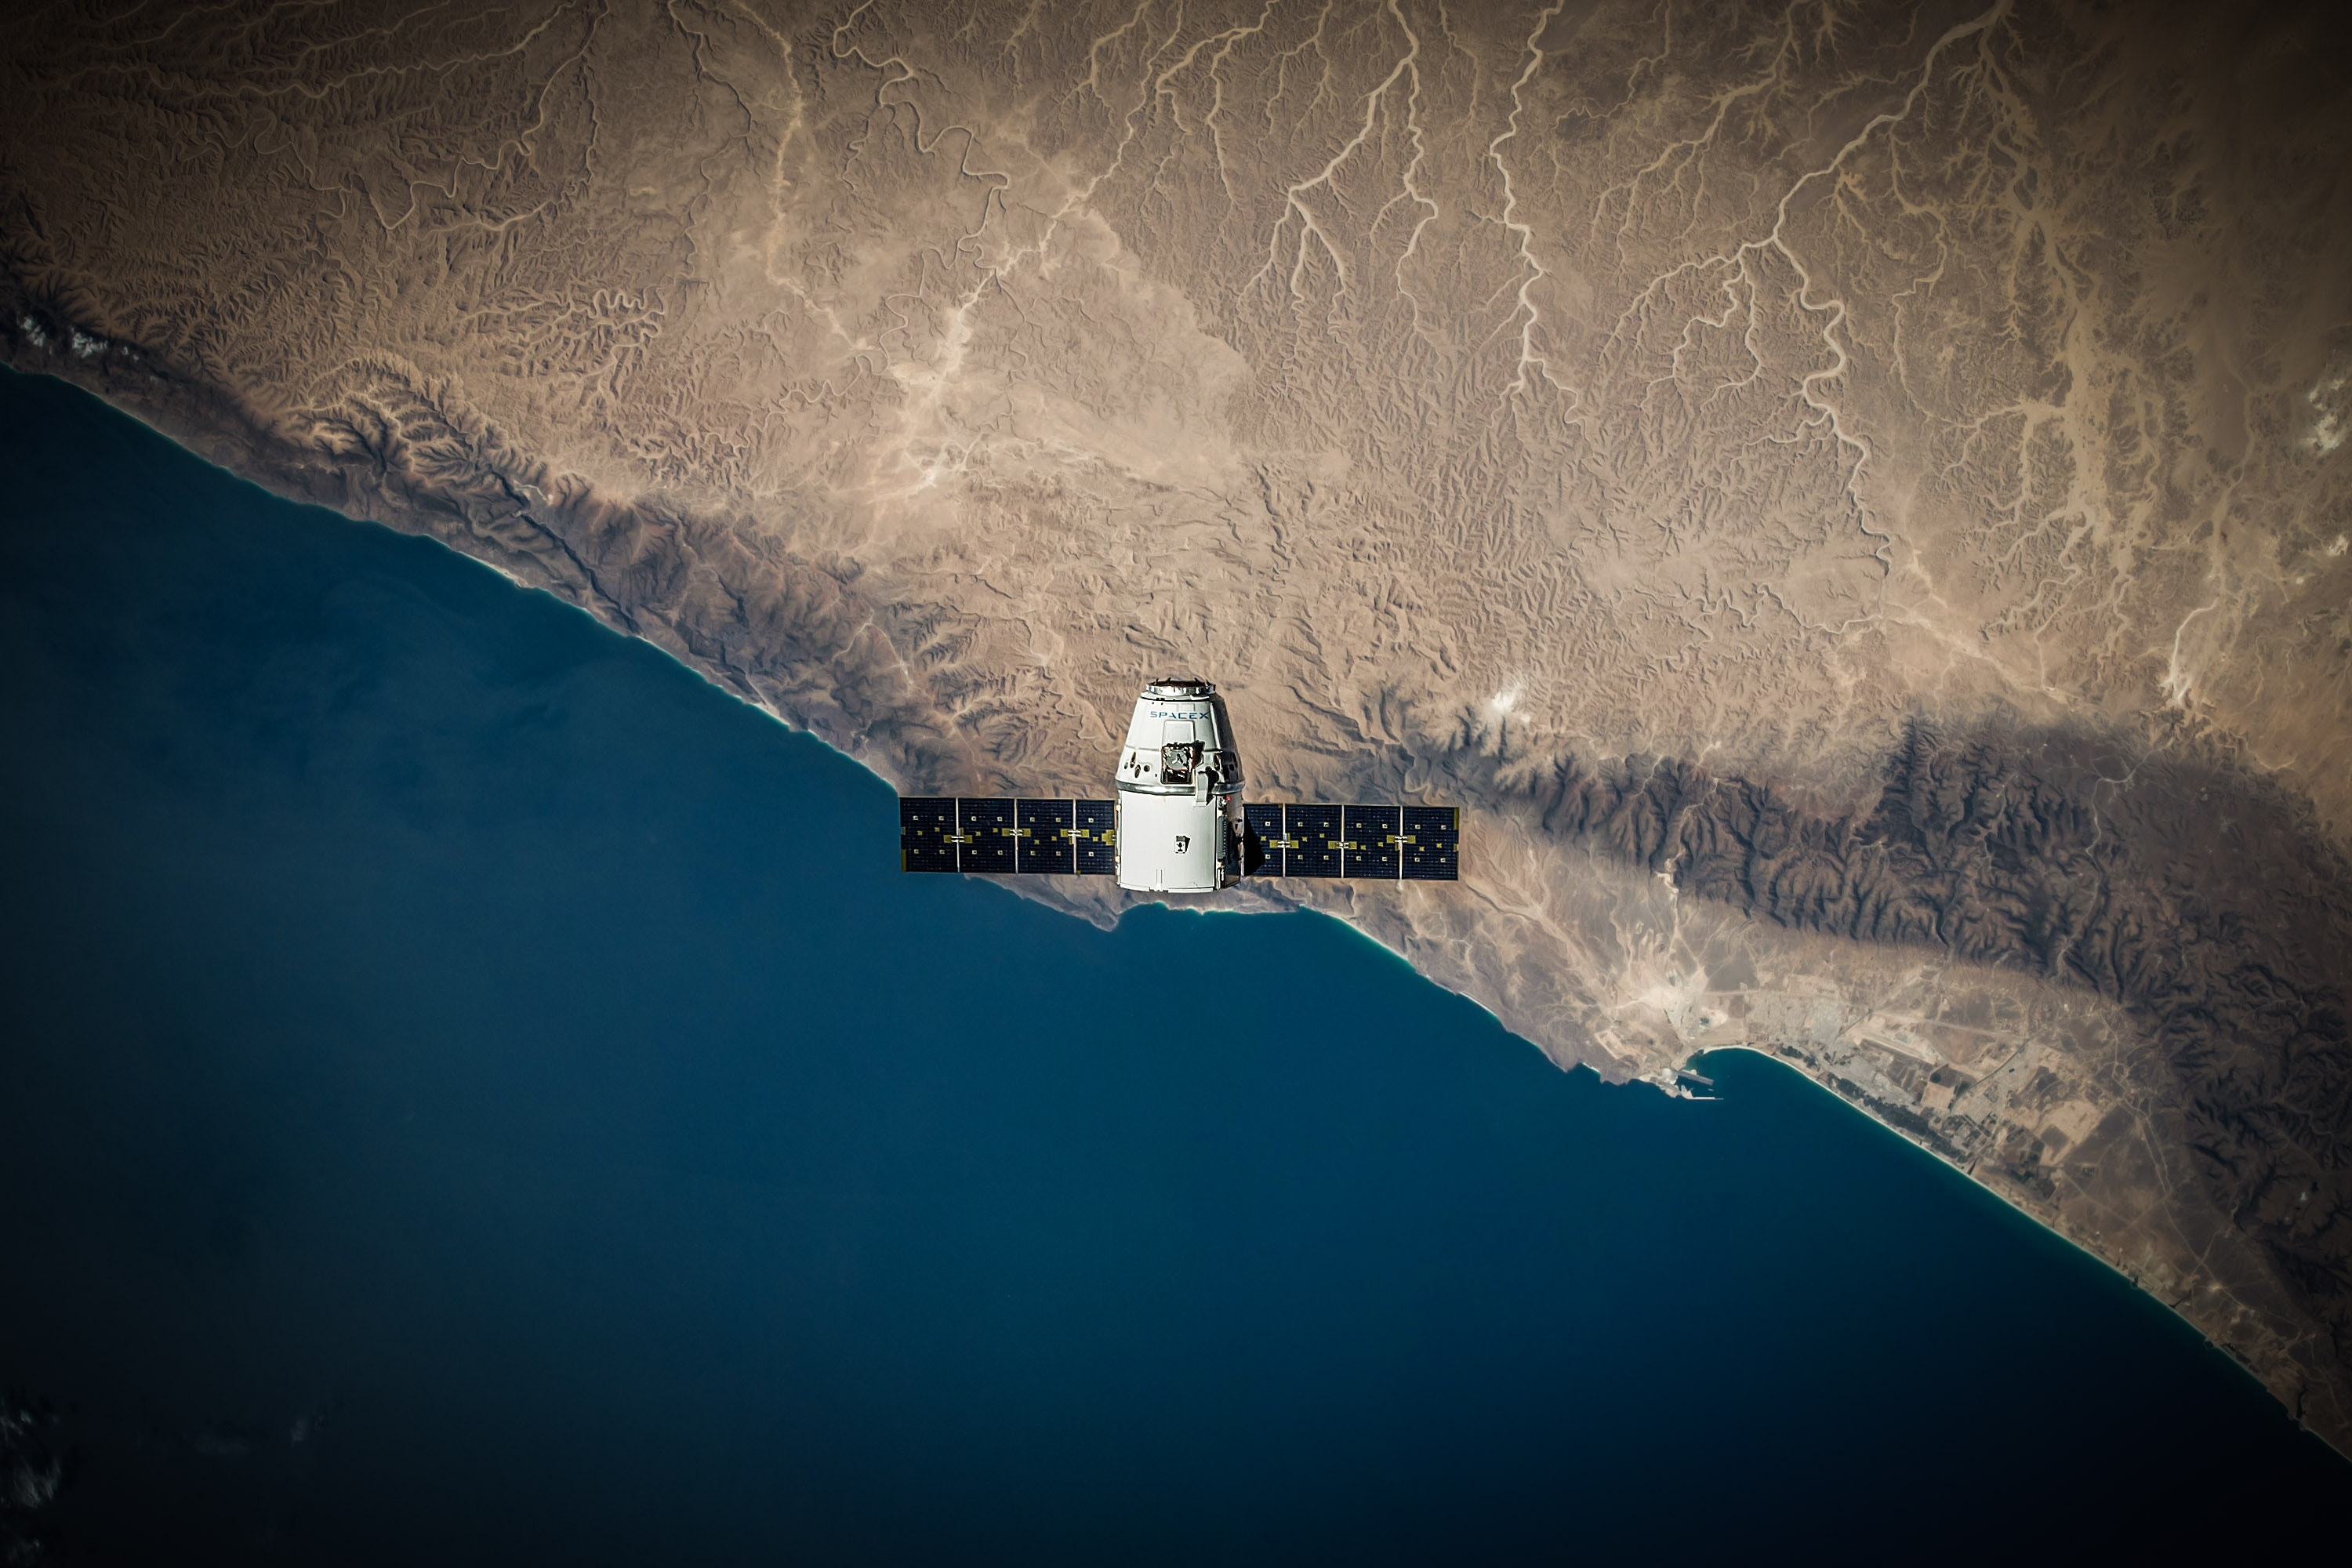 Image by SpaceX